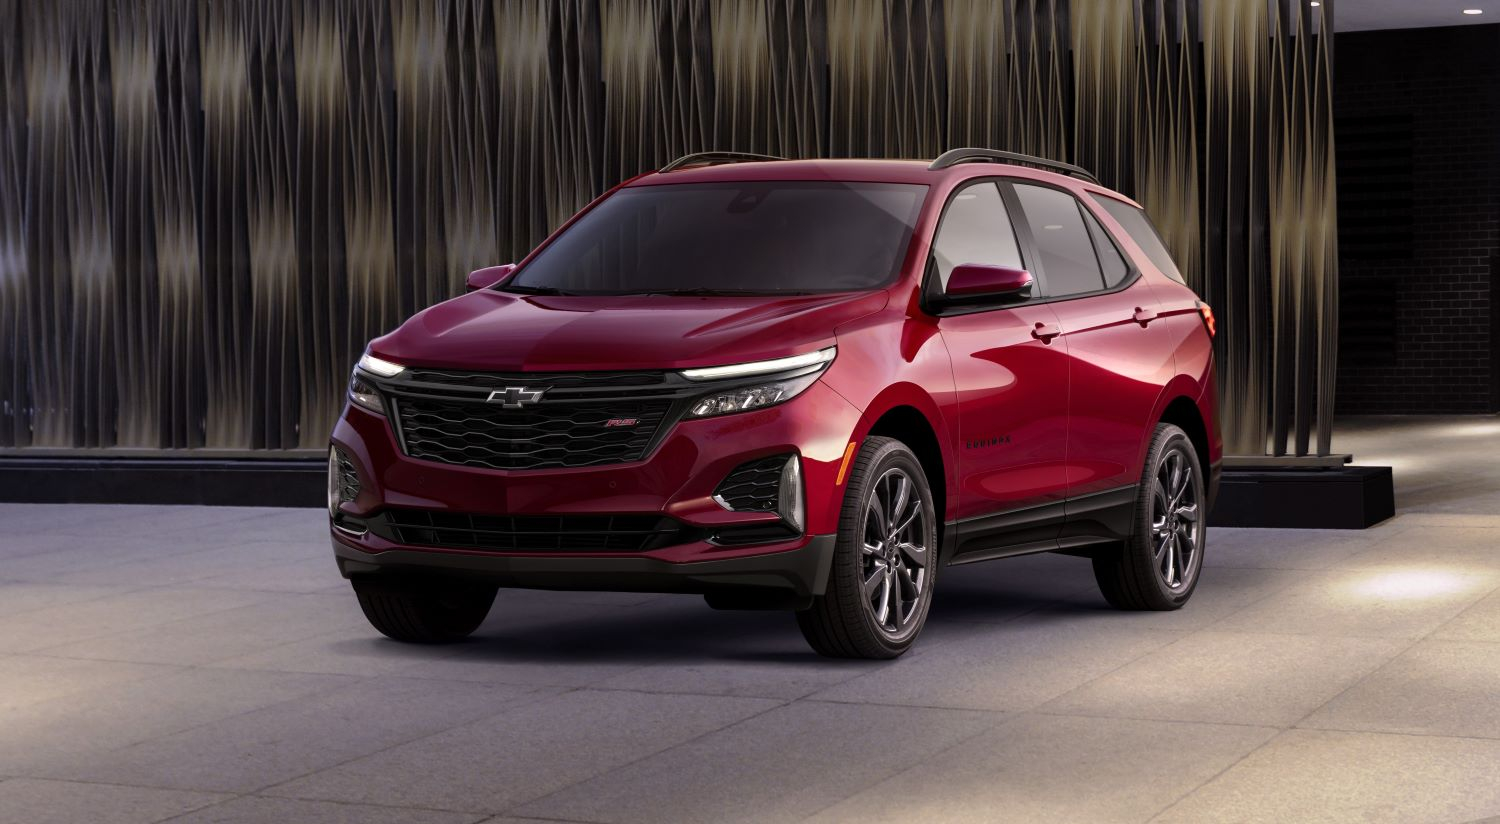 2021 Chevrolet Equinox Gets Engine Start-Stop Defeat Switch 2021 Chevy Traverse Rs Colors, Used, Mpg